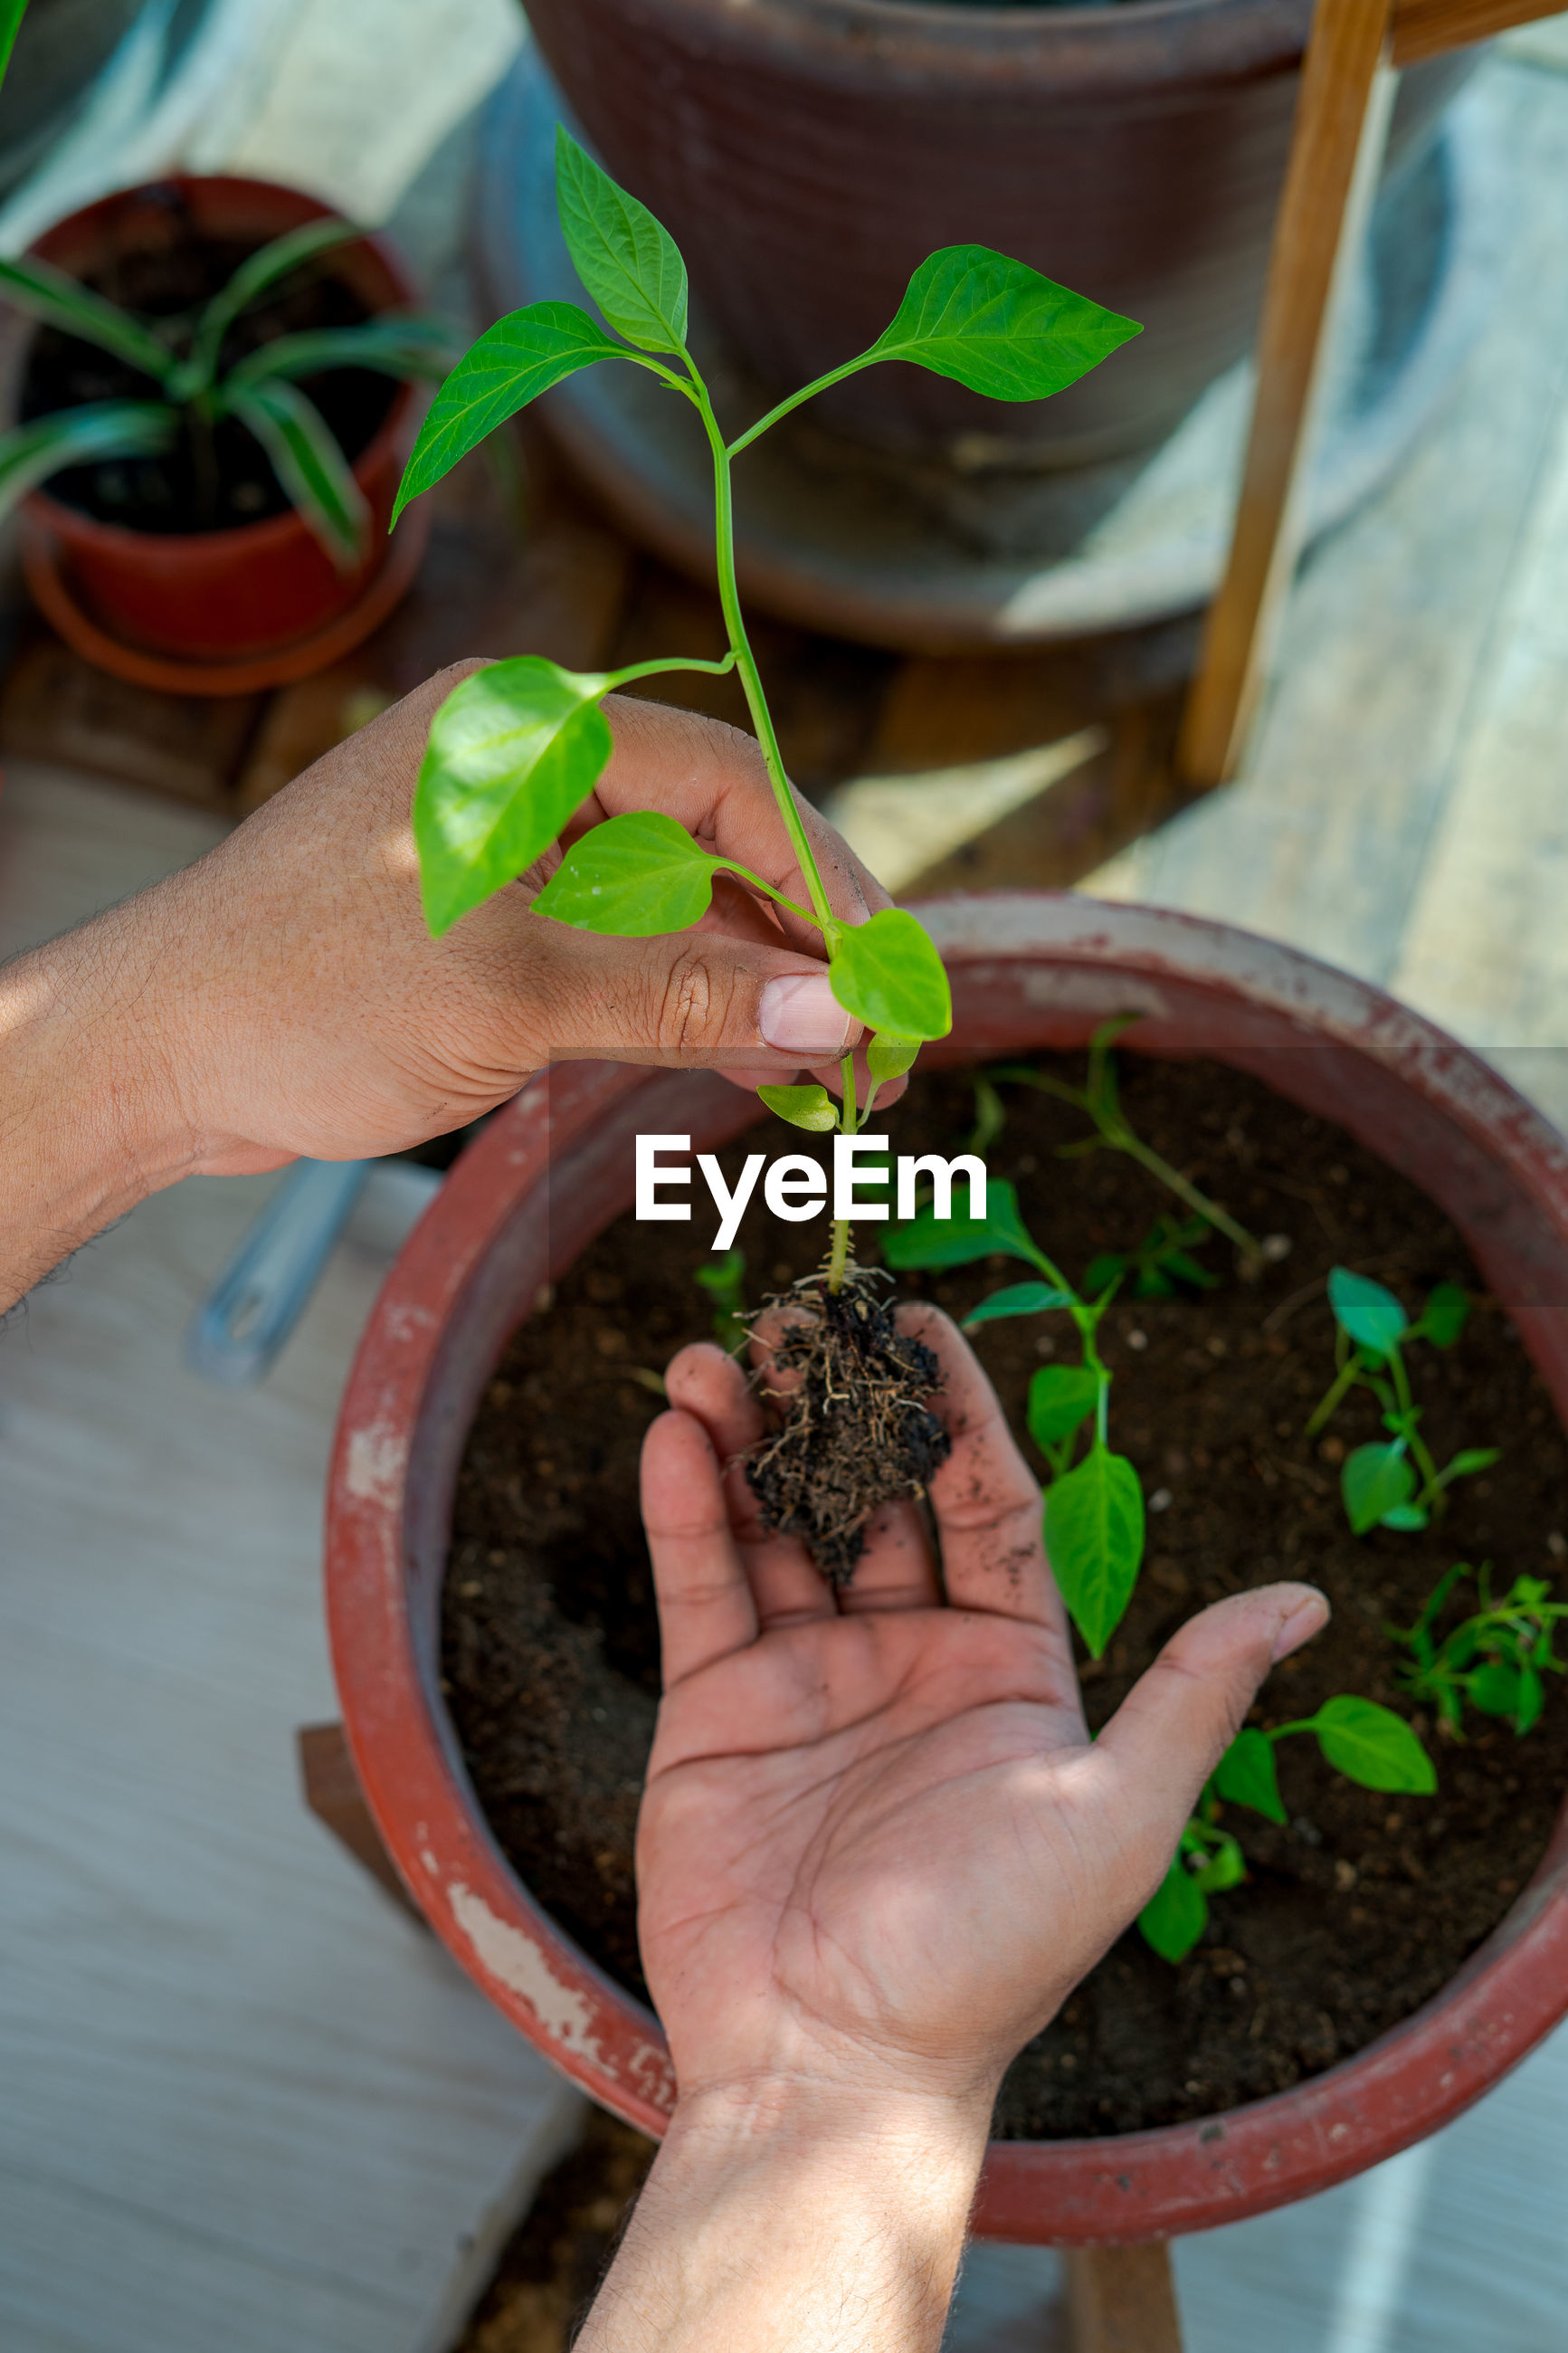 MIDSECTION OF PERSON HOLDING POTTED PLANT IN POT